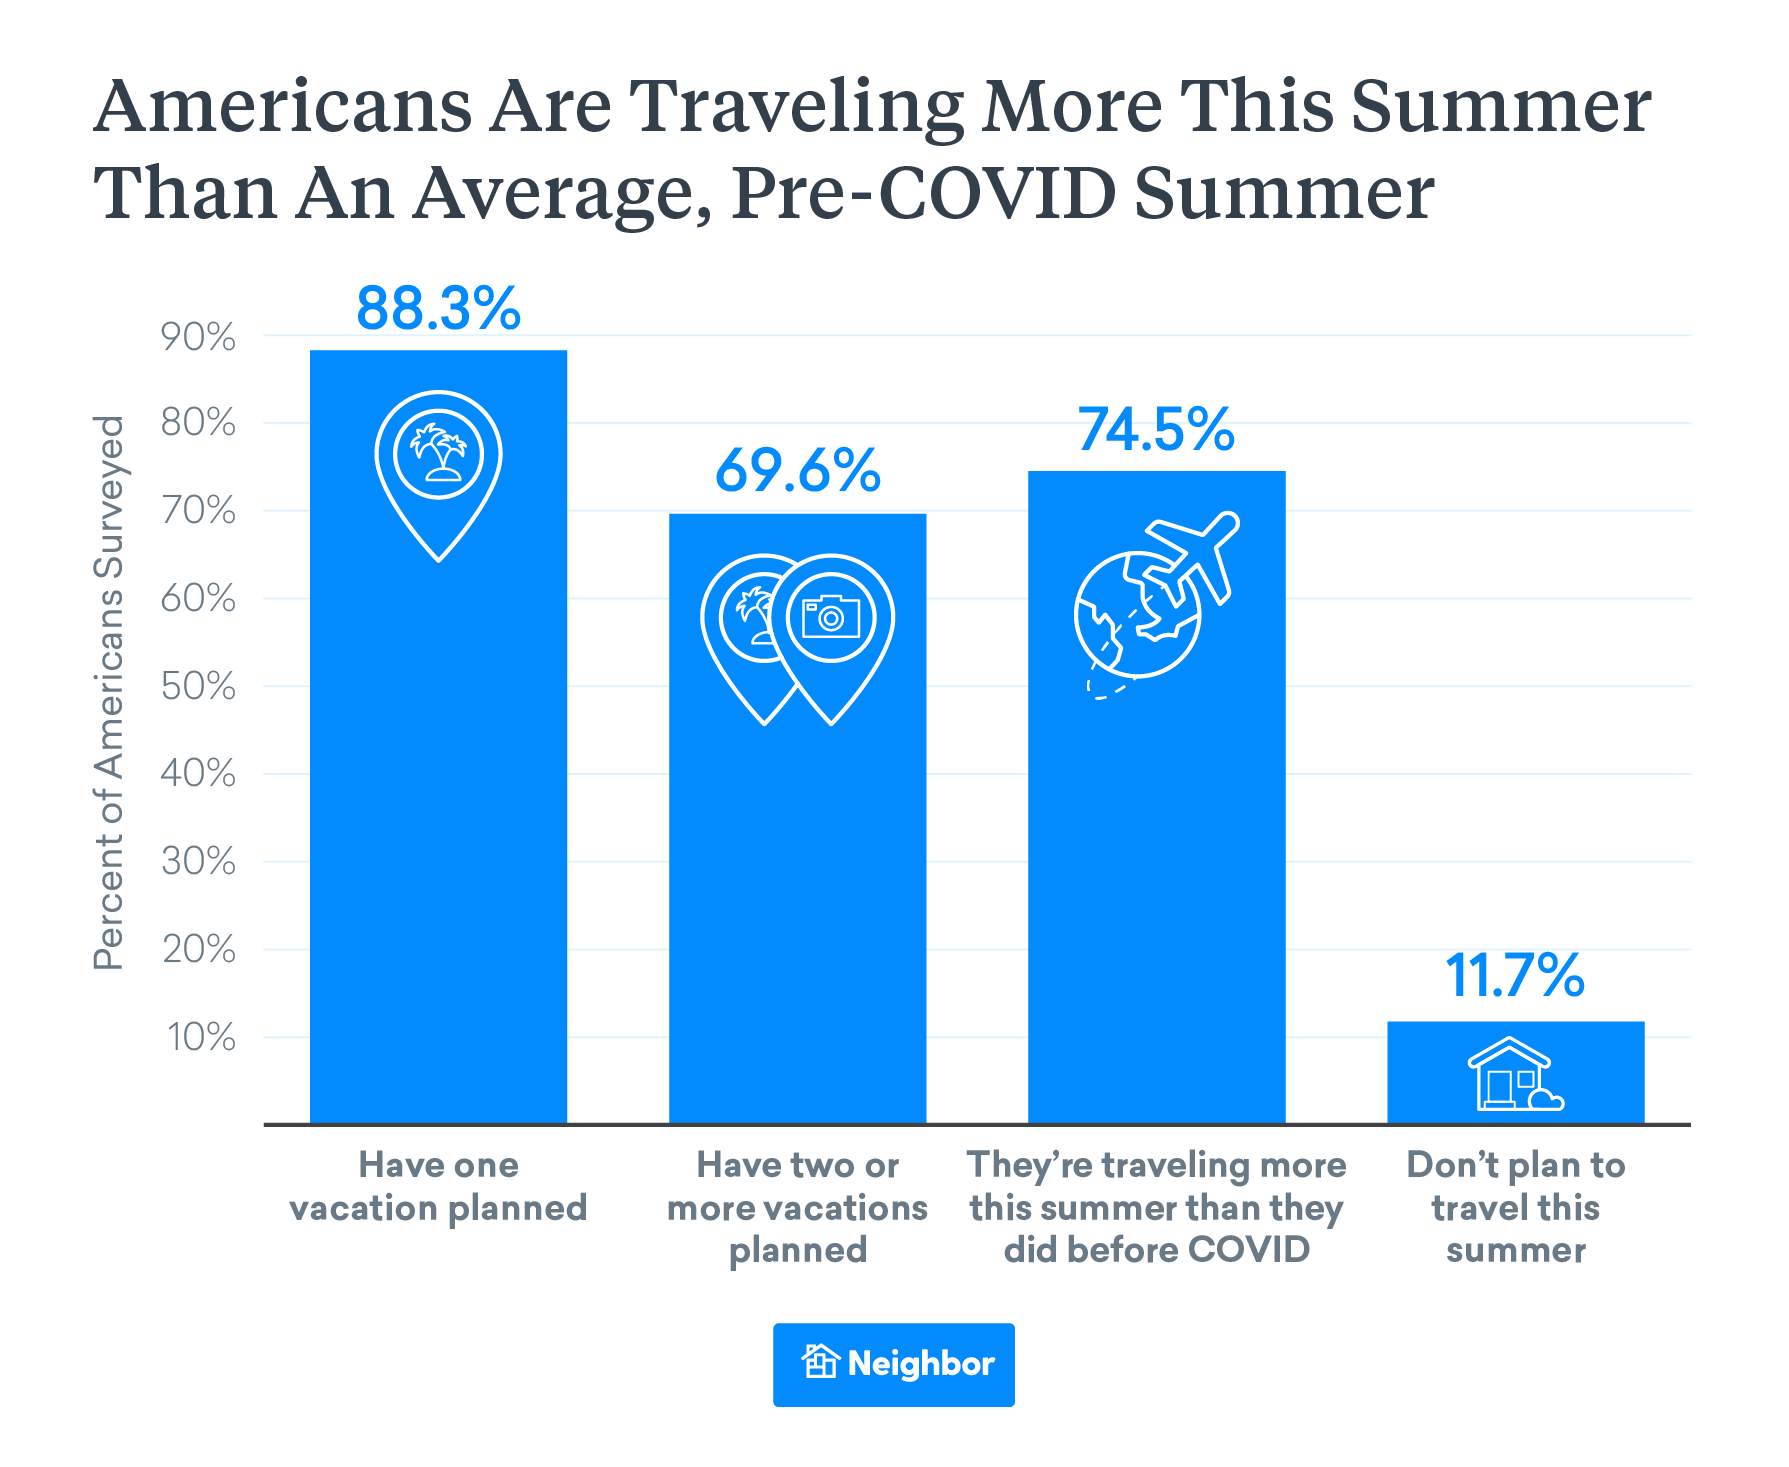 Americans are Traveling More this Summer